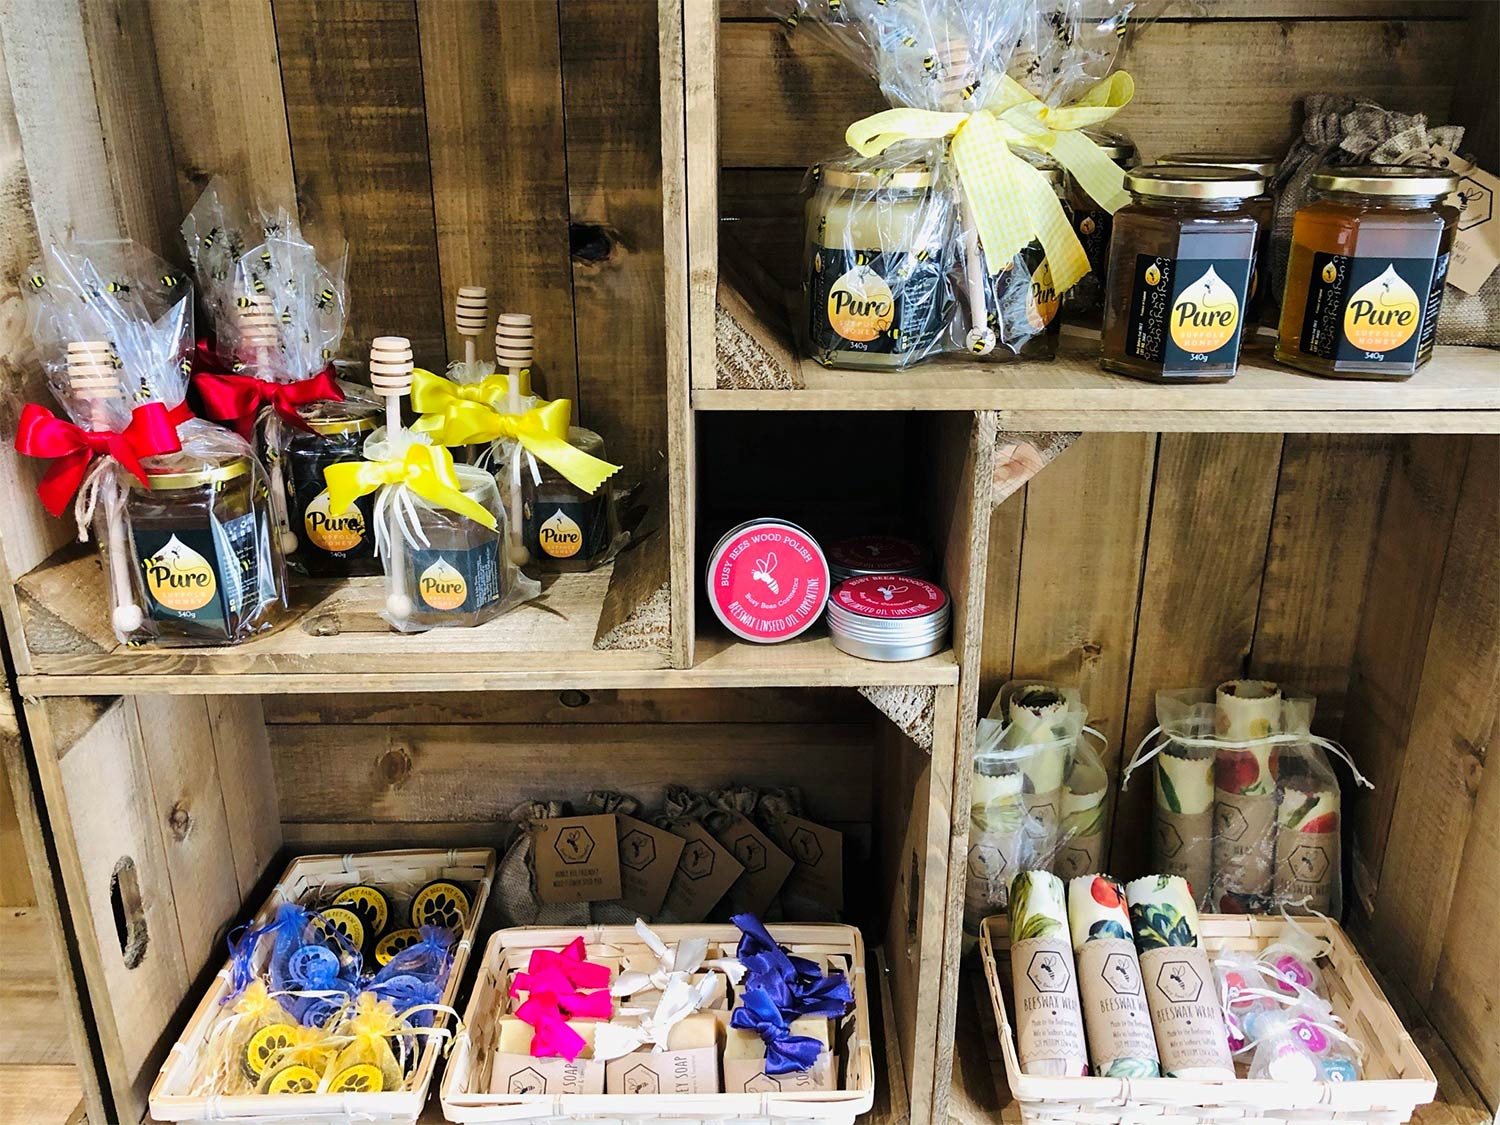 Busy Bees Honey Products, Wholesale